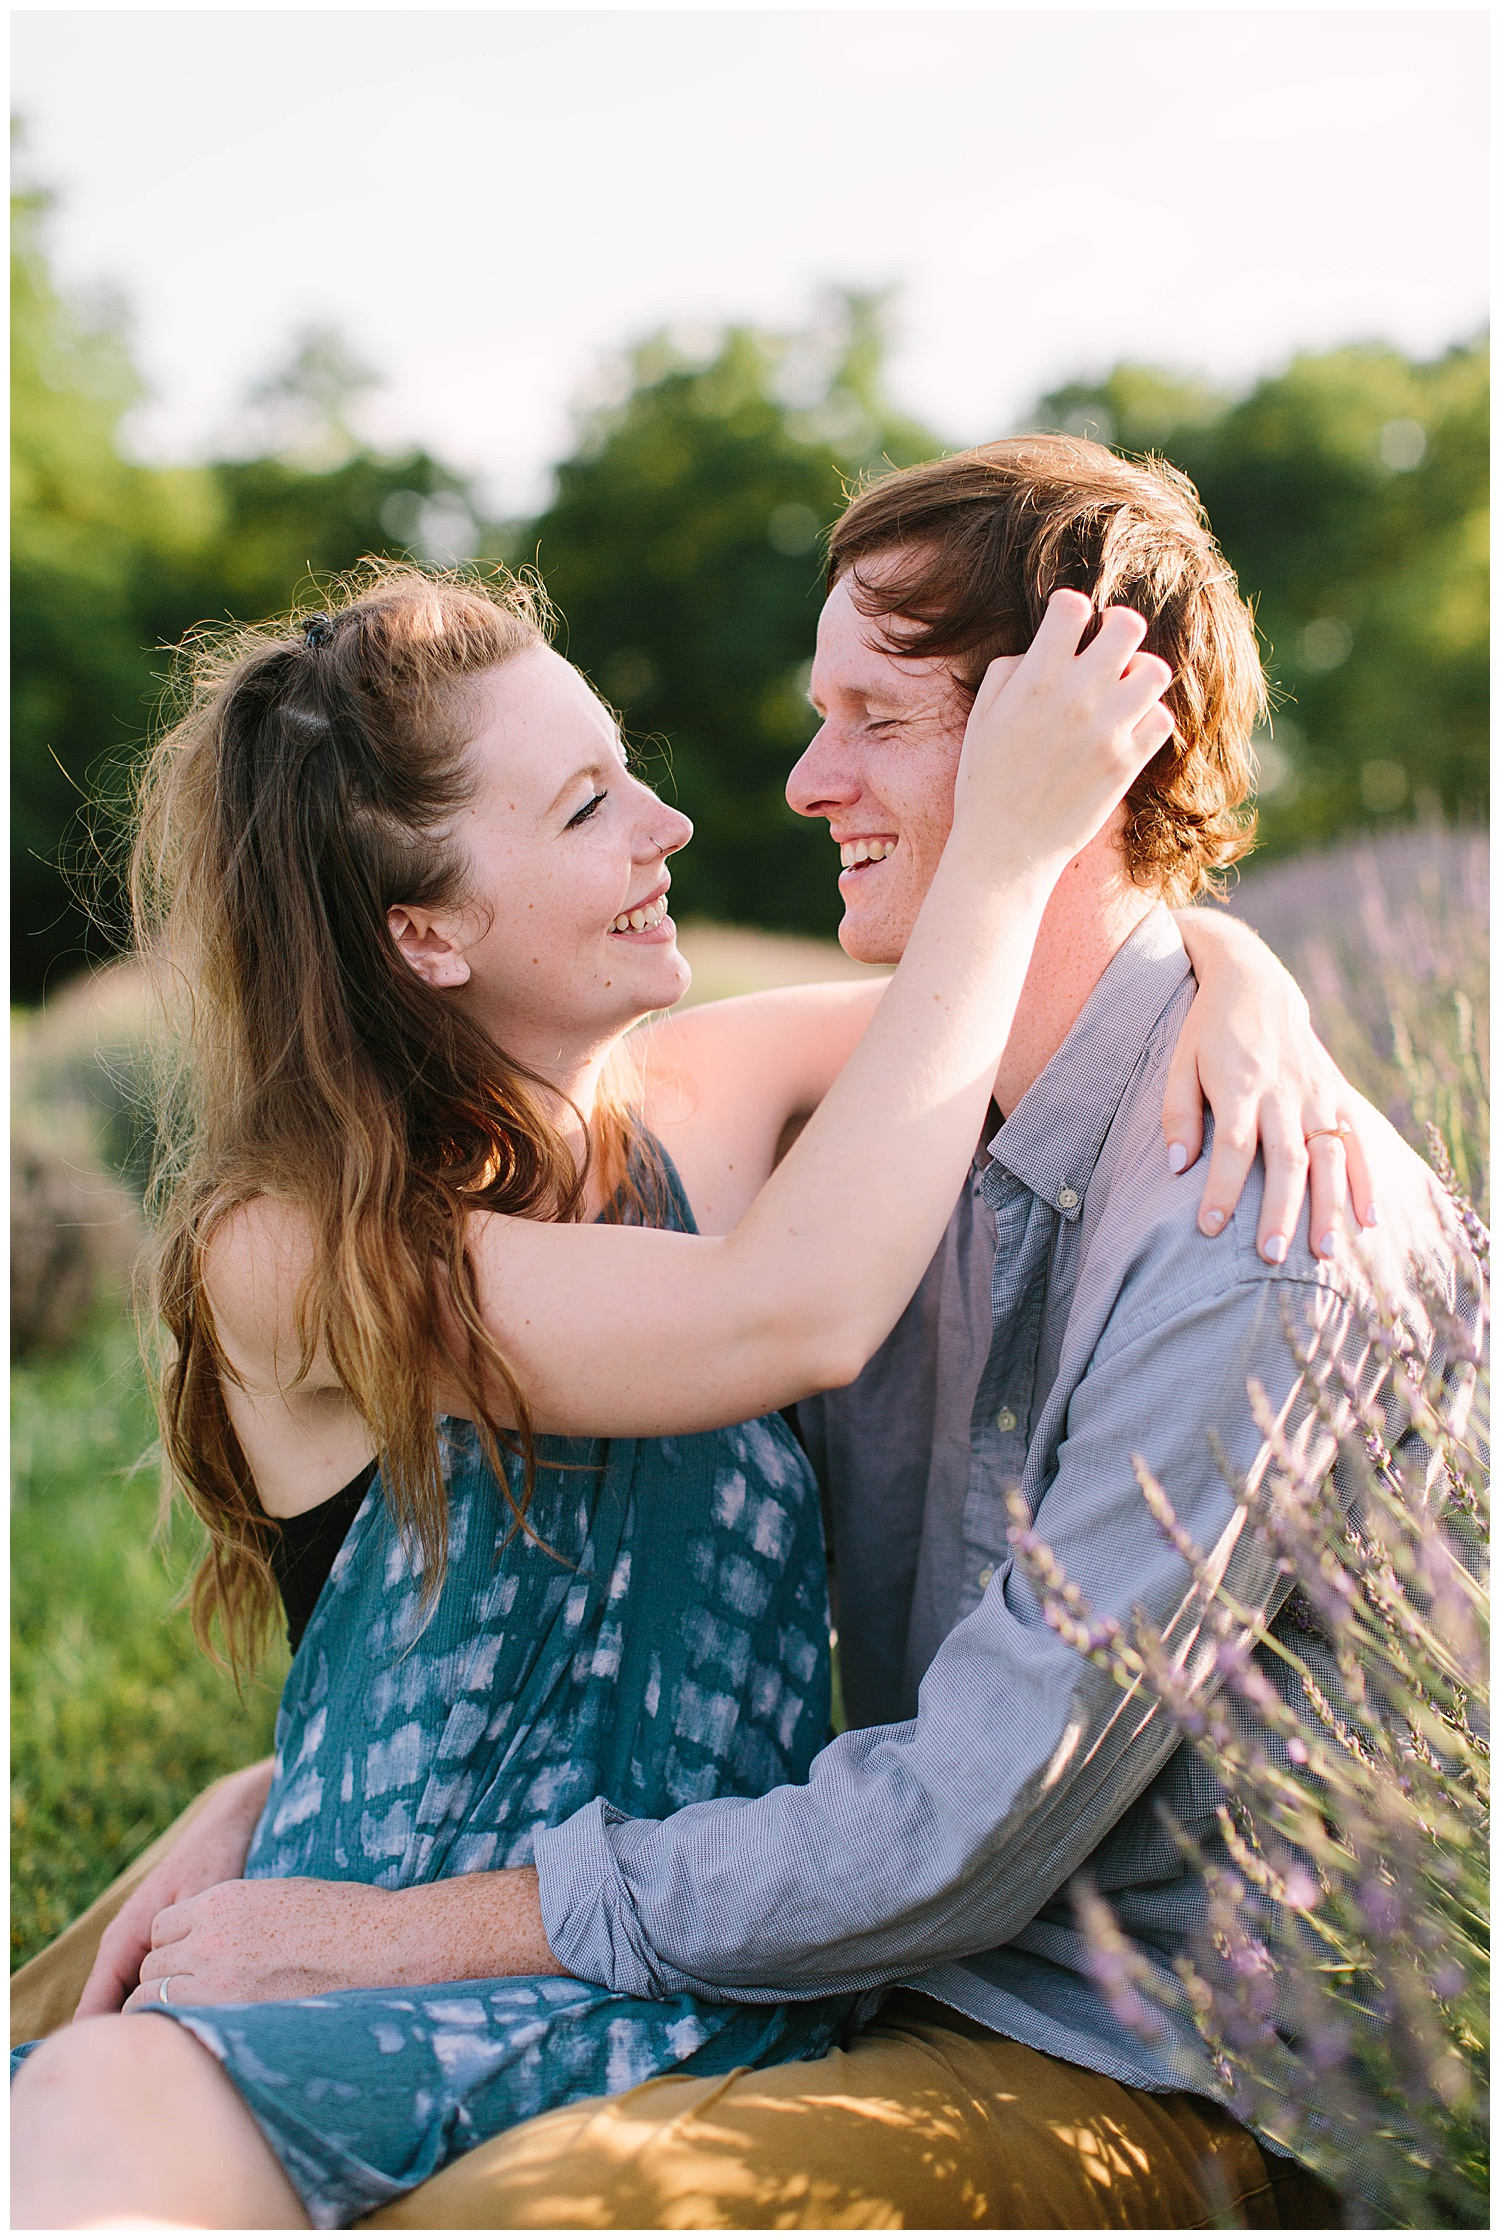 lavender.photoshoot.lavenderfarm.kentucky.engagement.anniversary.photography-34.jpg